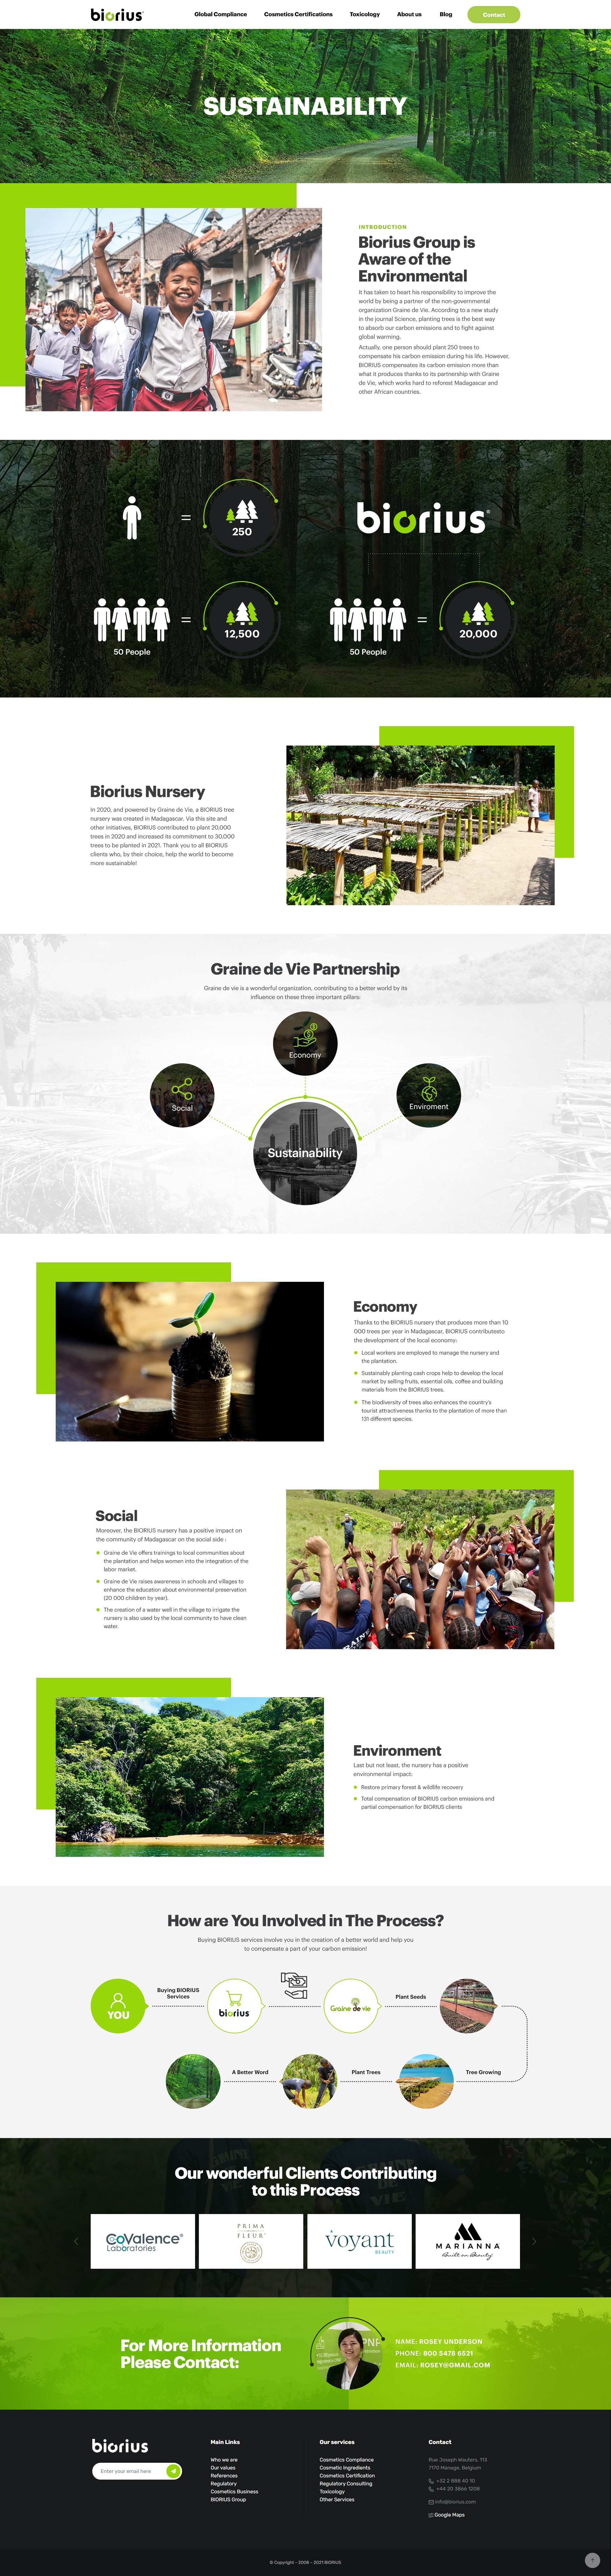 Sustainability page creation for the BIORIUS website